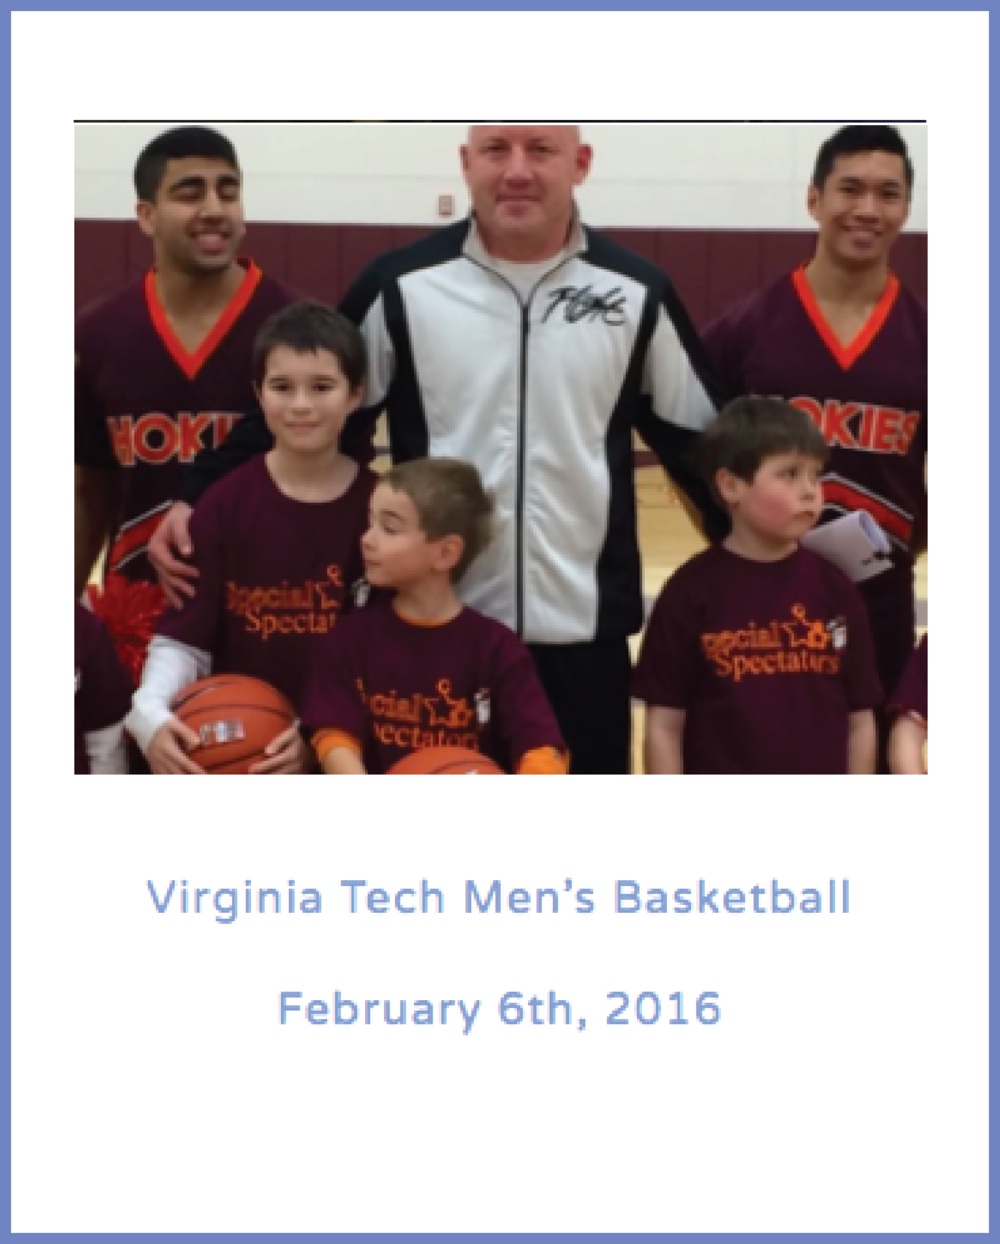 Virginia Tech Men's Basketball February 6th, 2016